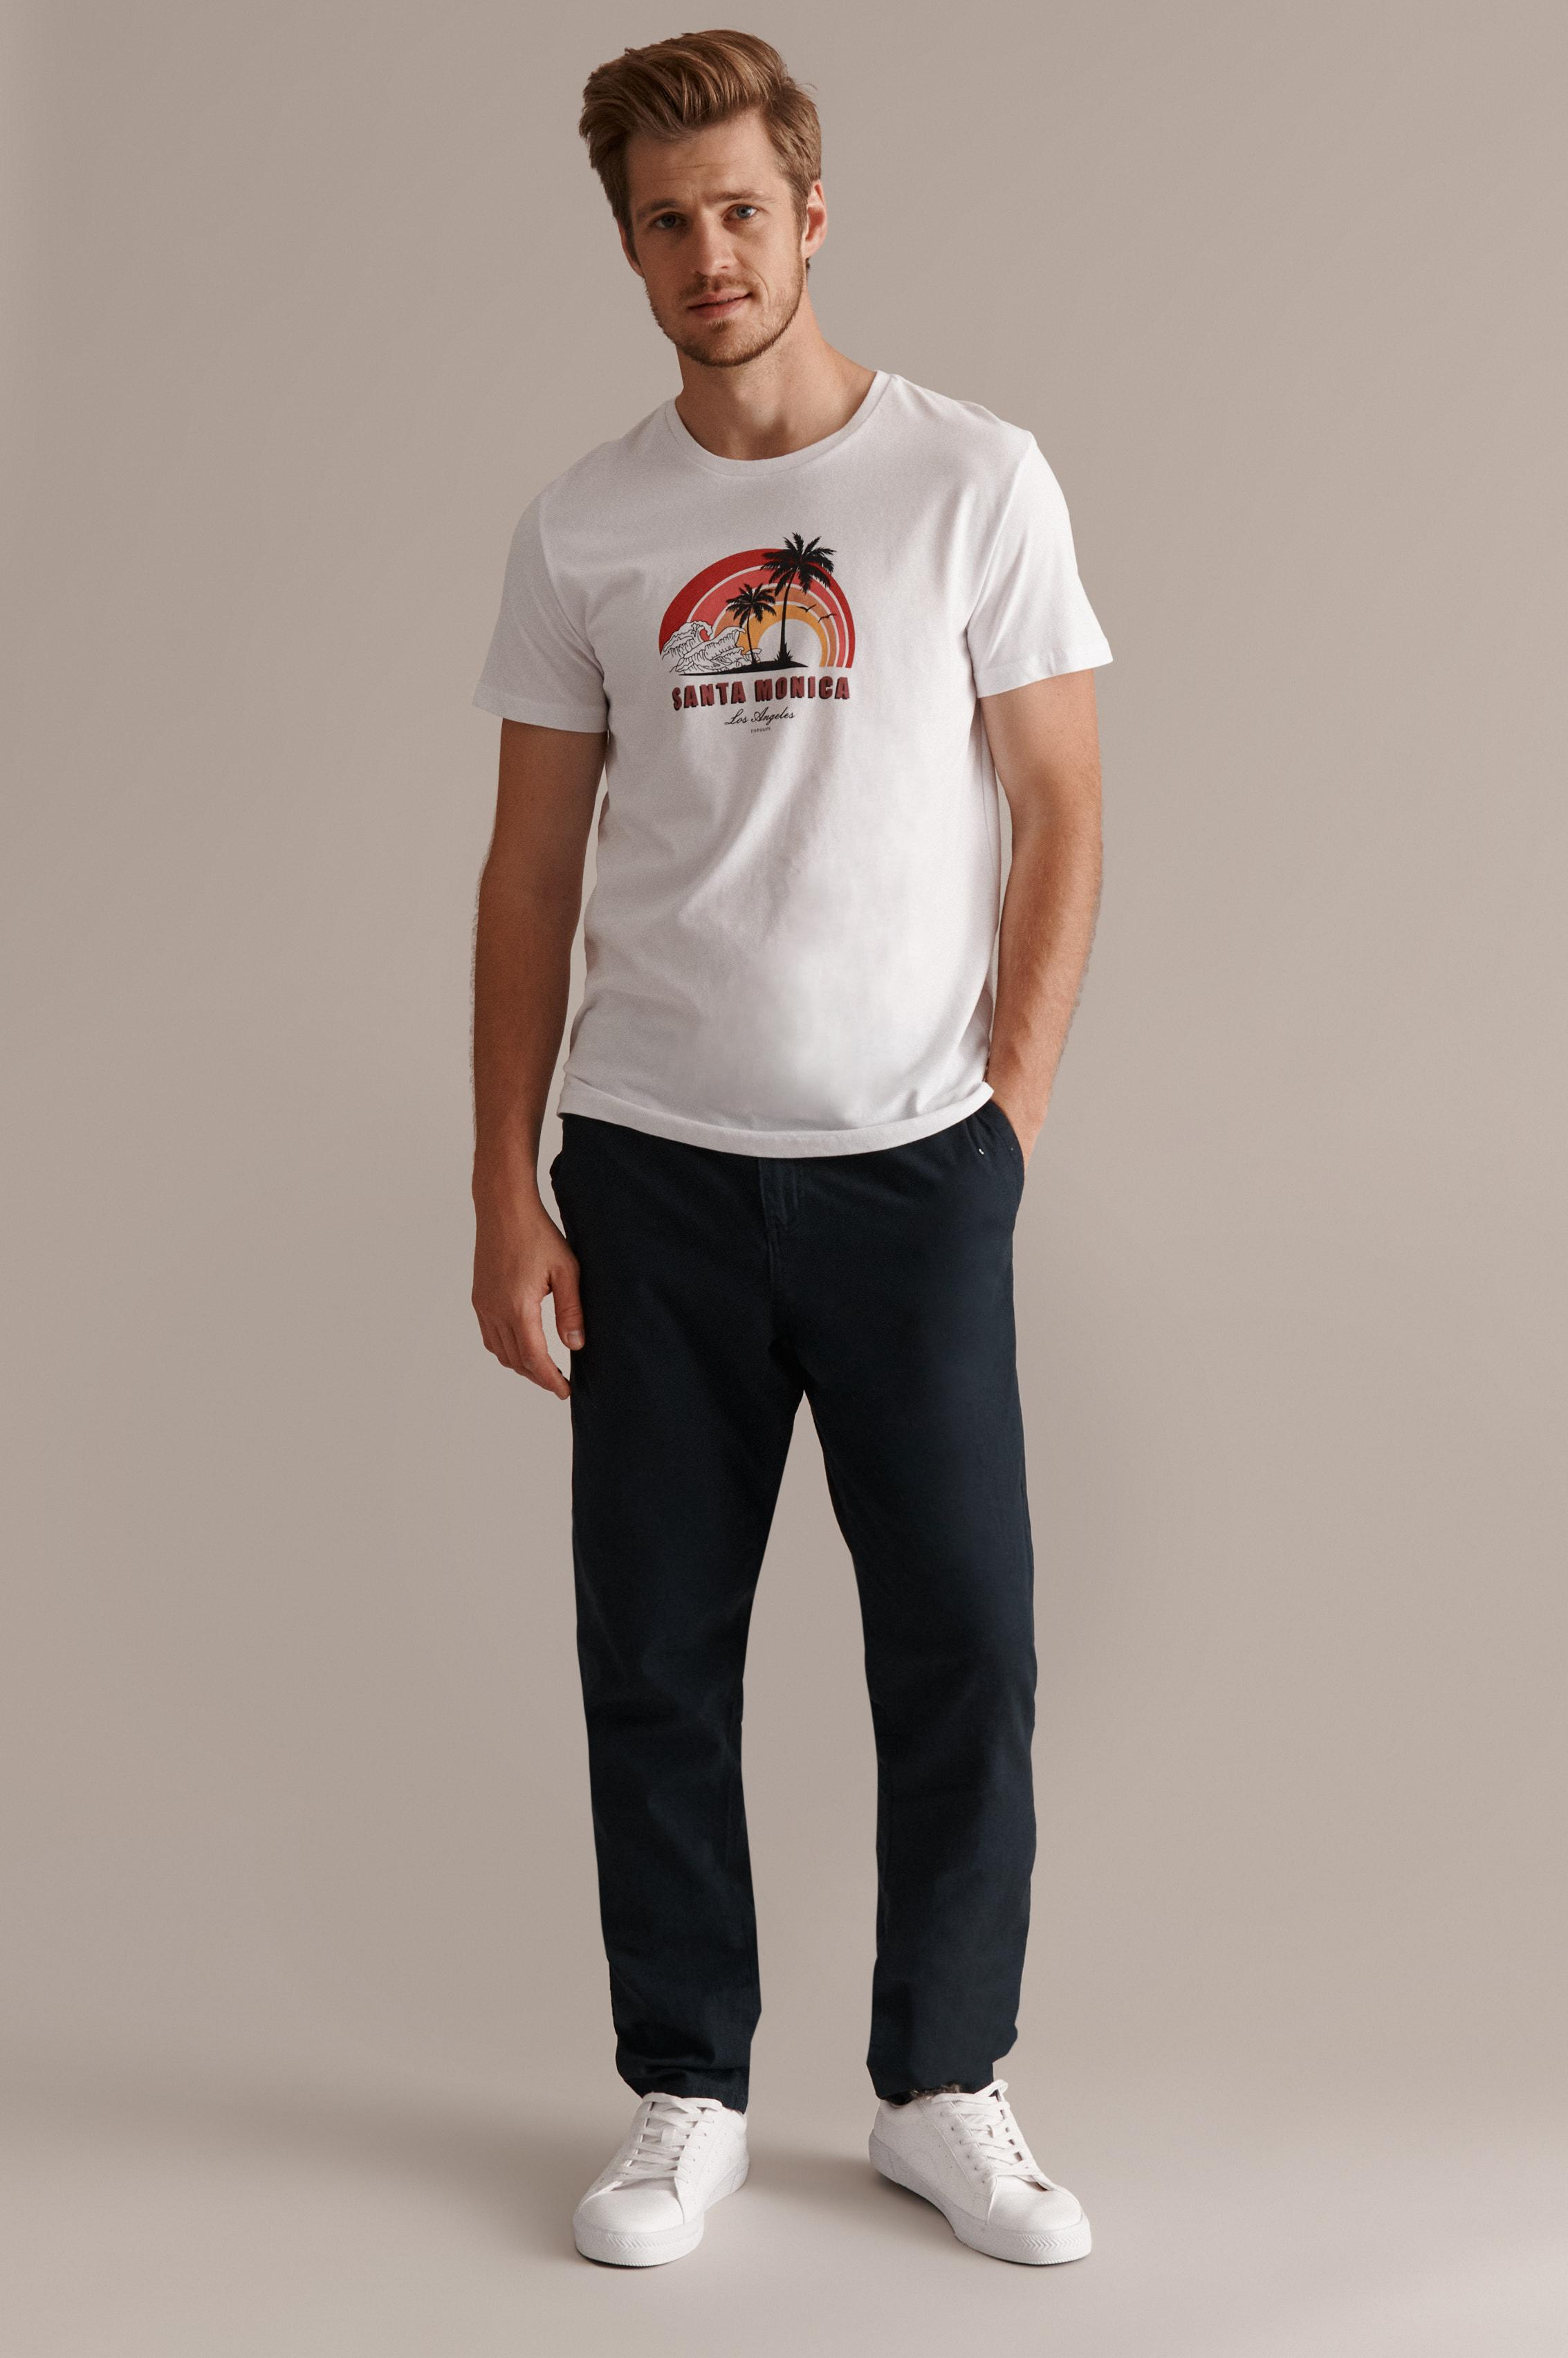 MEN'S T-SHIRT WITH HOLIDAYS THEME MIKIN 27